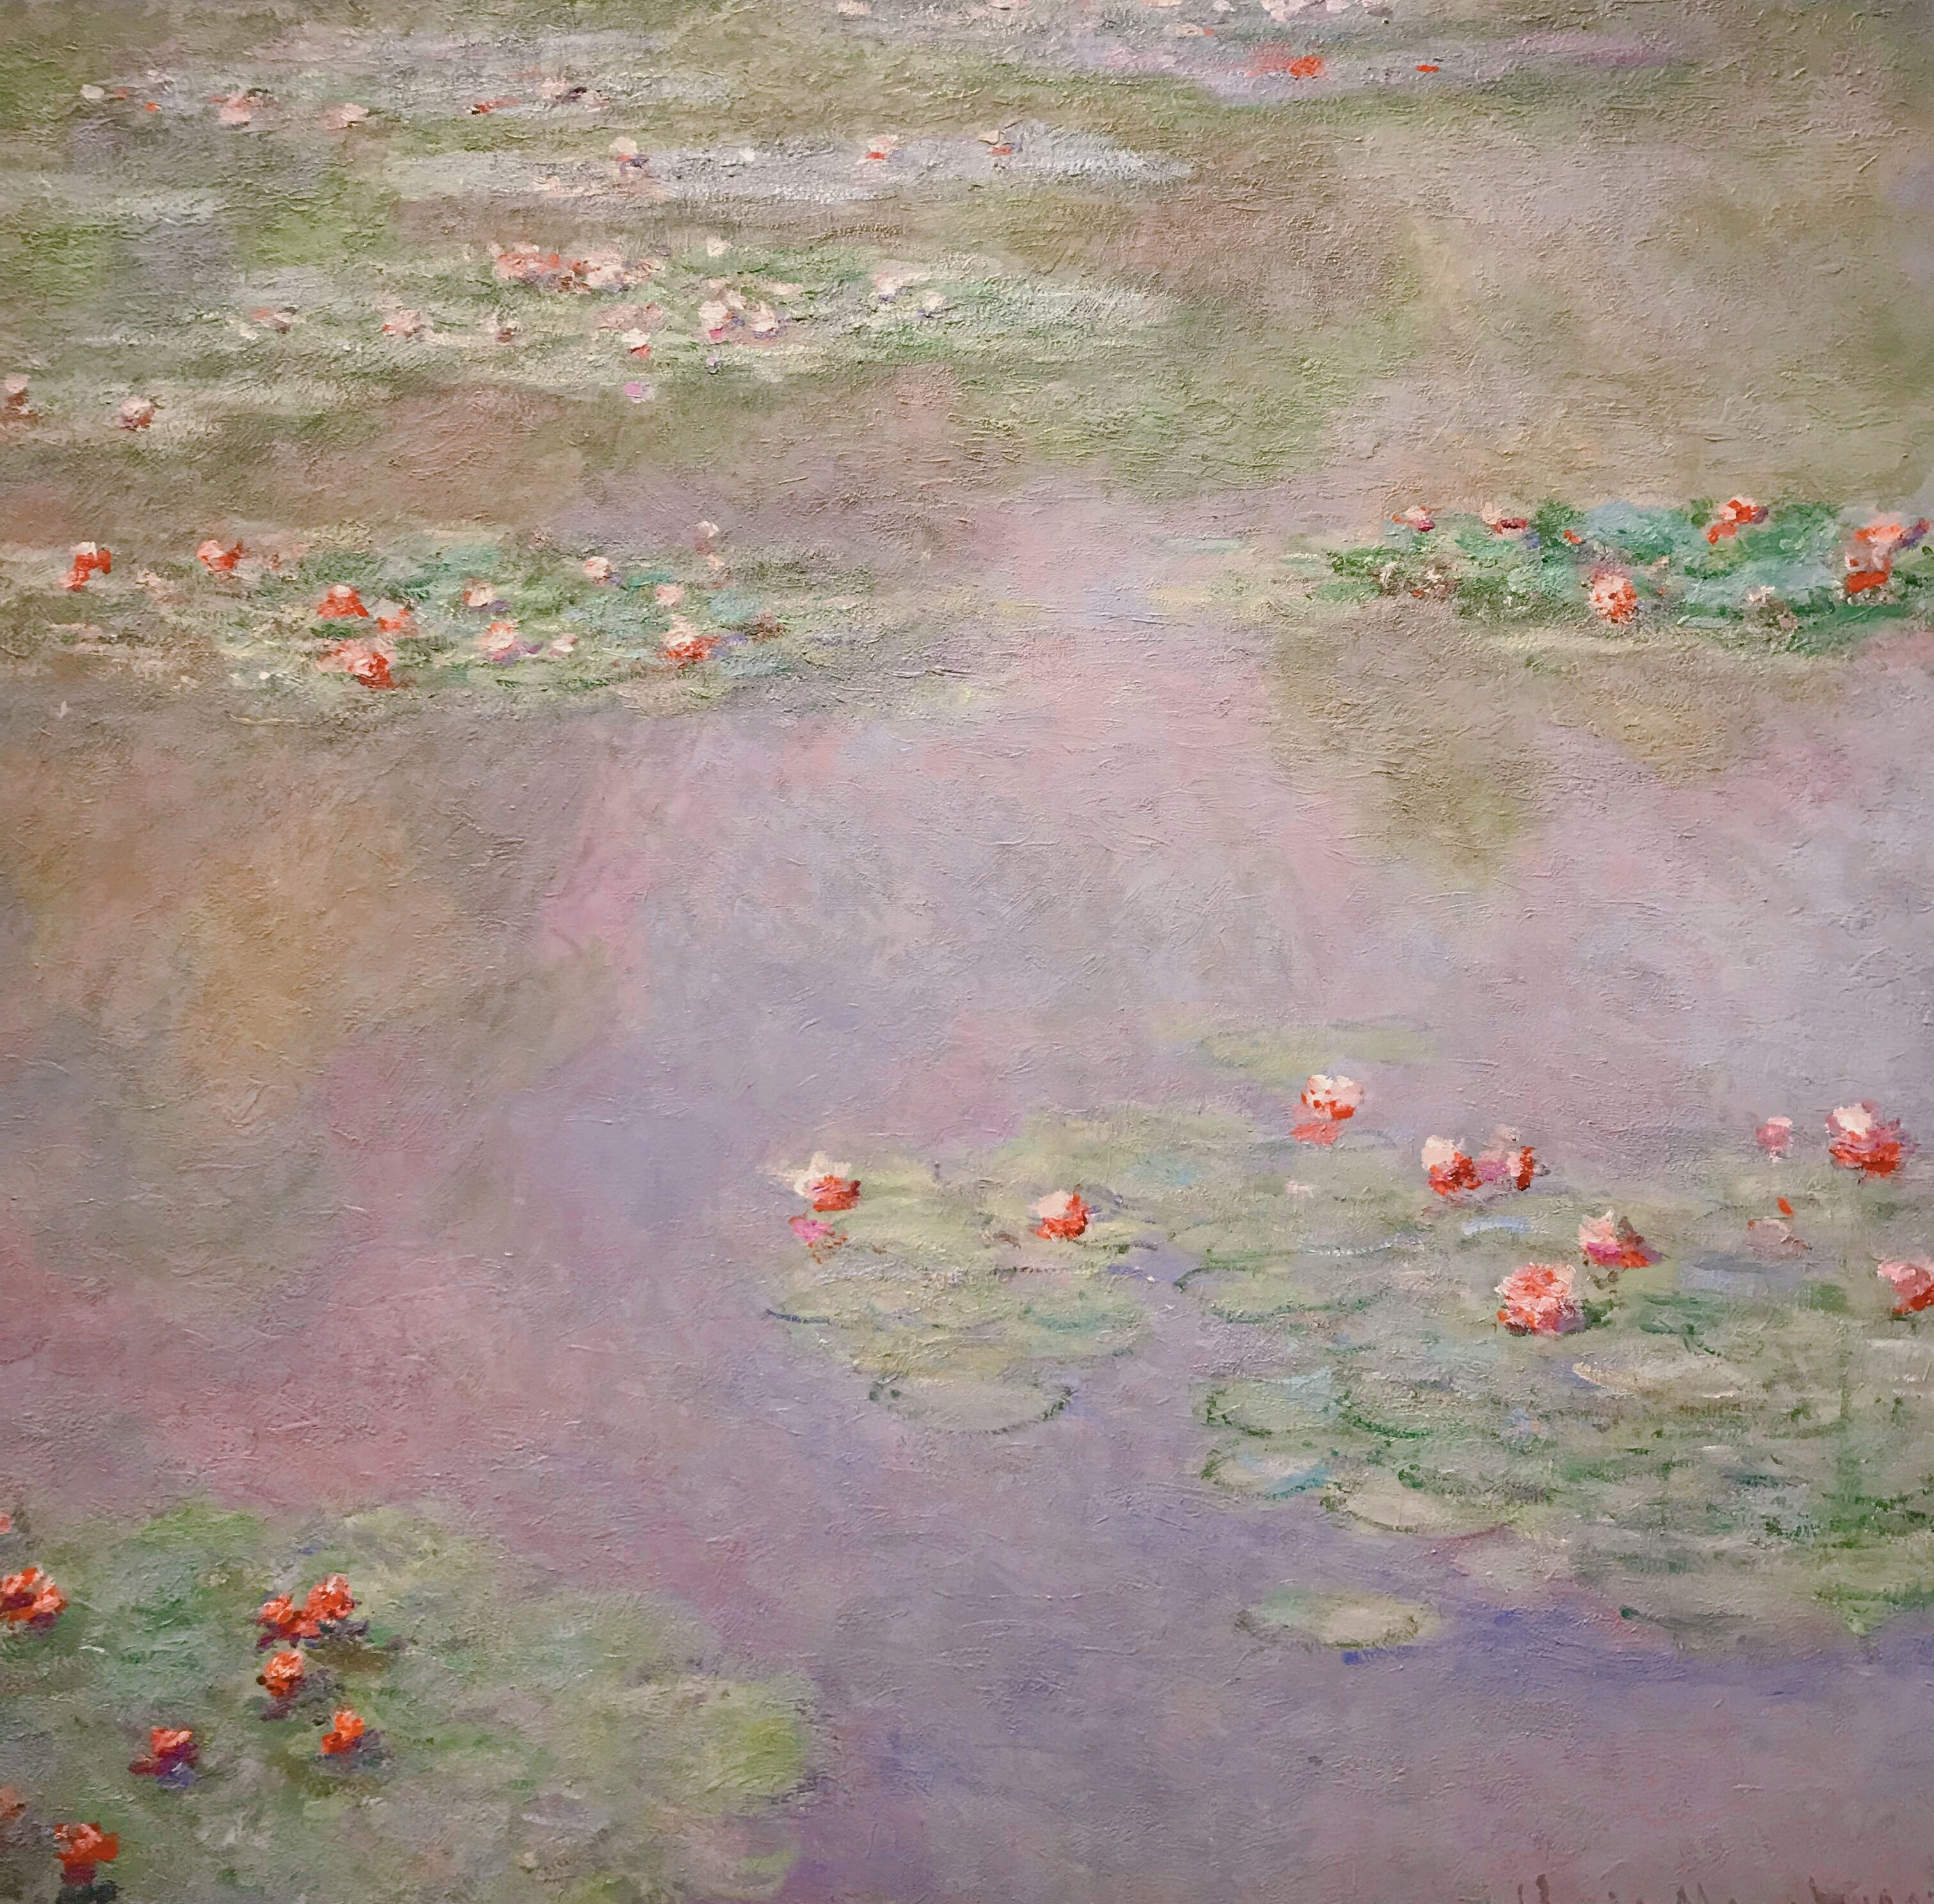 WATER GARDEN WHITE /& BLUE FLOWERS IMPRESSIONIST PAINTING ART REAL CANVAS PRINT